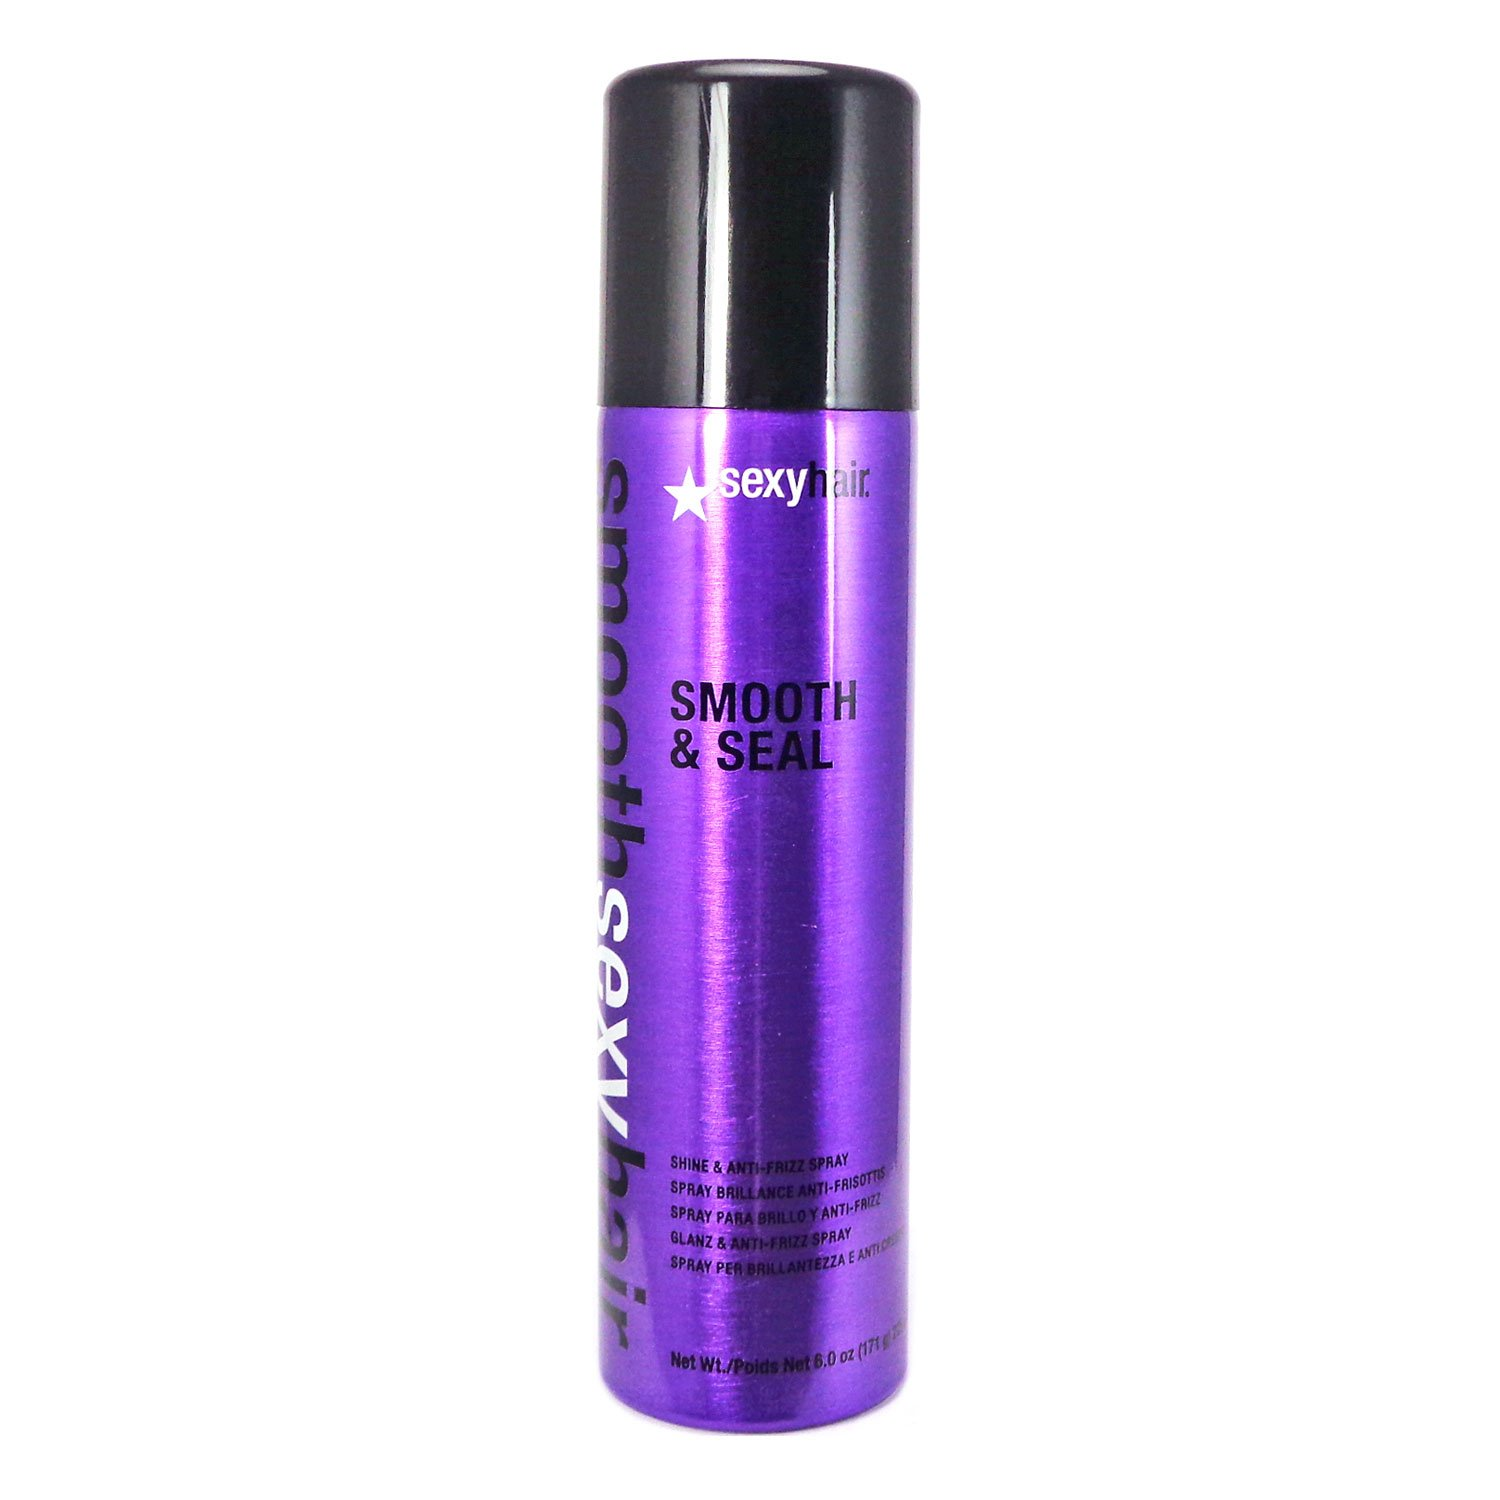 exy Hair Concepts Smooth Sexy Hair Smooth & Seal Anti-Frizz & Shine Spray Humidity Resistant Helps Eliminate Frizz & Protect Style - Provides Smoothness, Hydration & Shine to Dry, Unruly Hair - 6oz